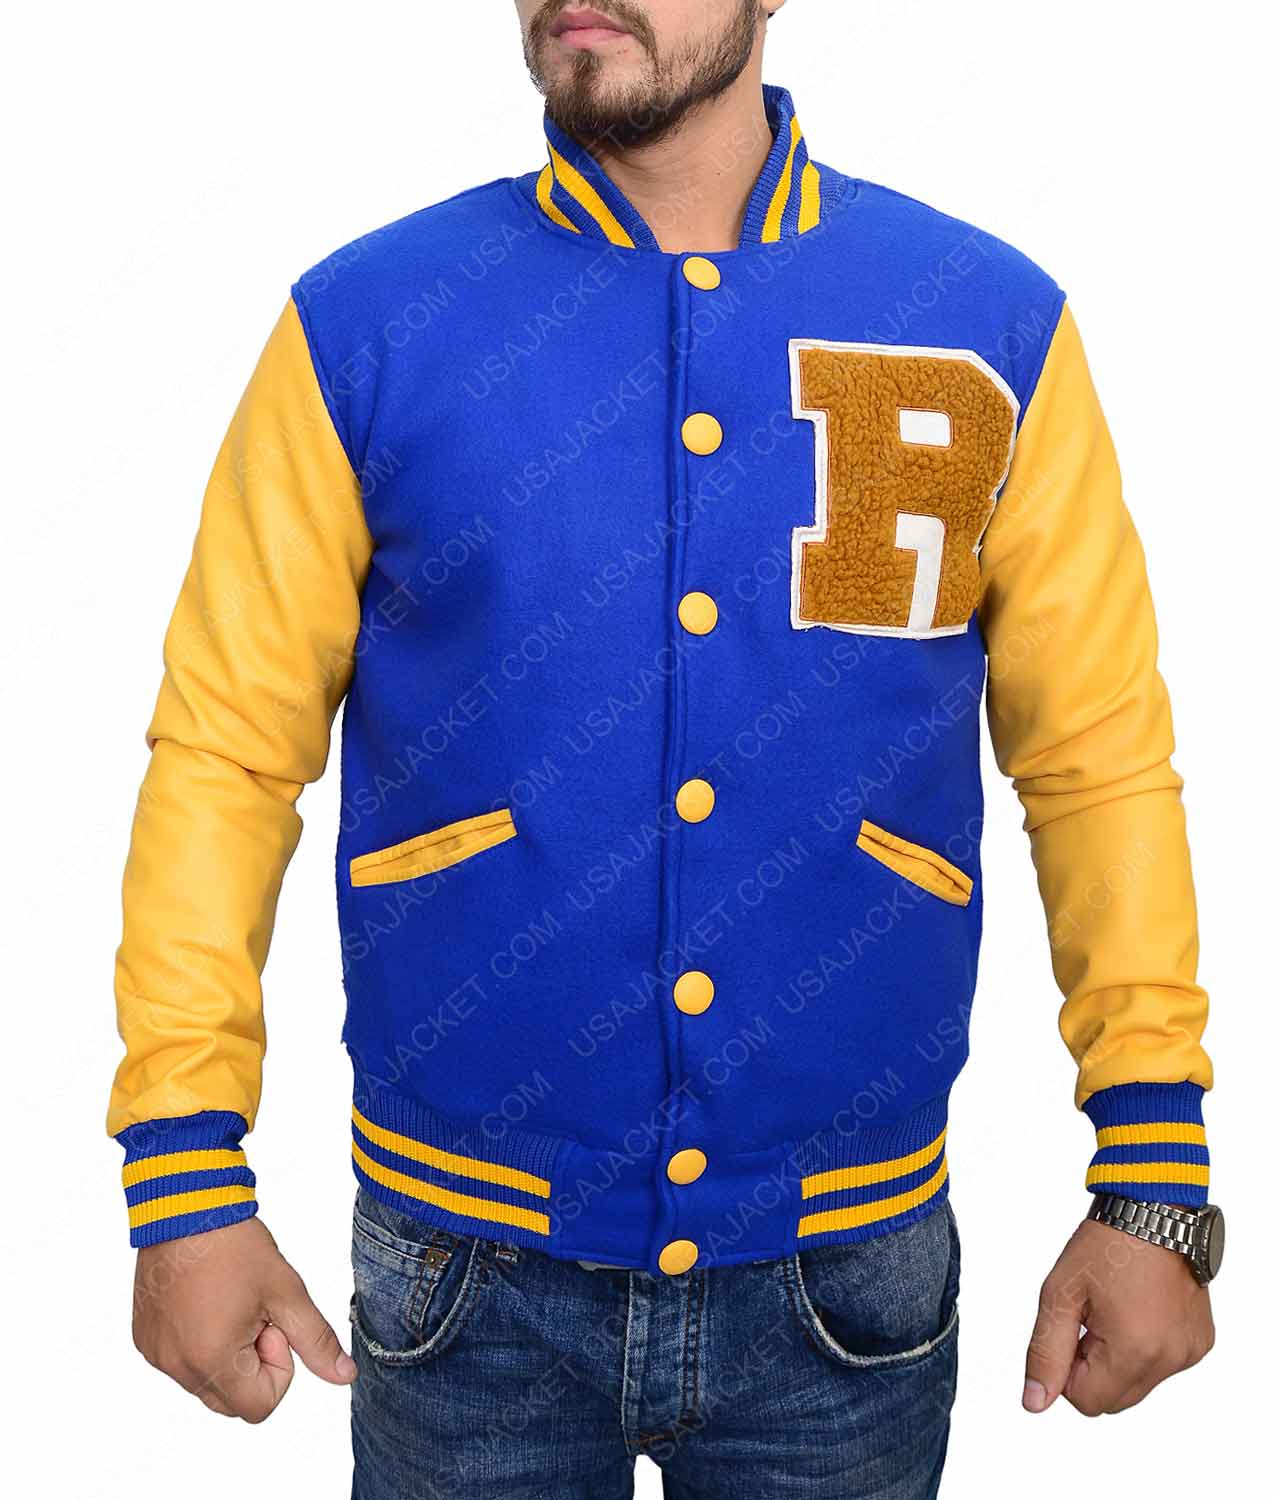 00702cbcb72df0 Mens Varsity Jacket In Cotton And Leather - USA Jacket